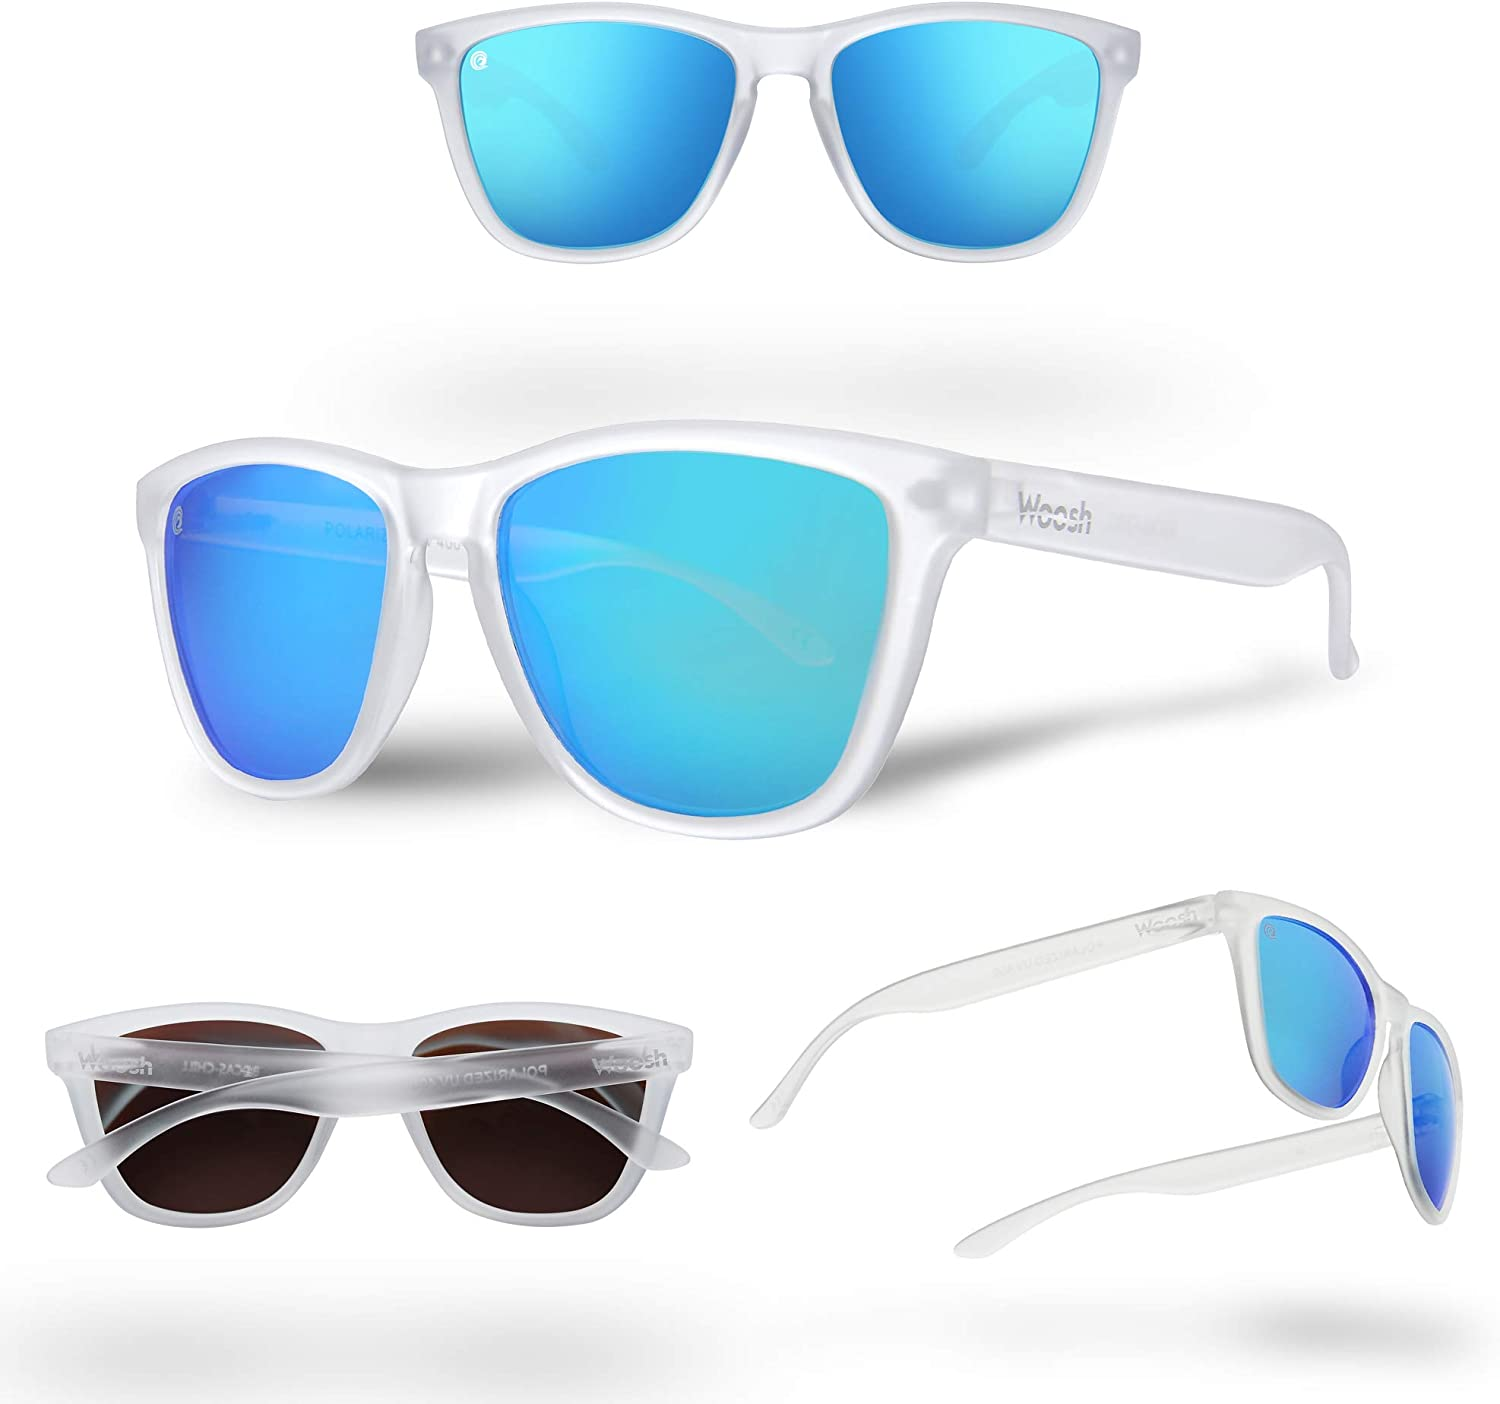 WOOSH Polarized Lightweight Sunglasses for Men and Women -Unisex Sunnies for Fishing Beach Running Sports and Outdoors